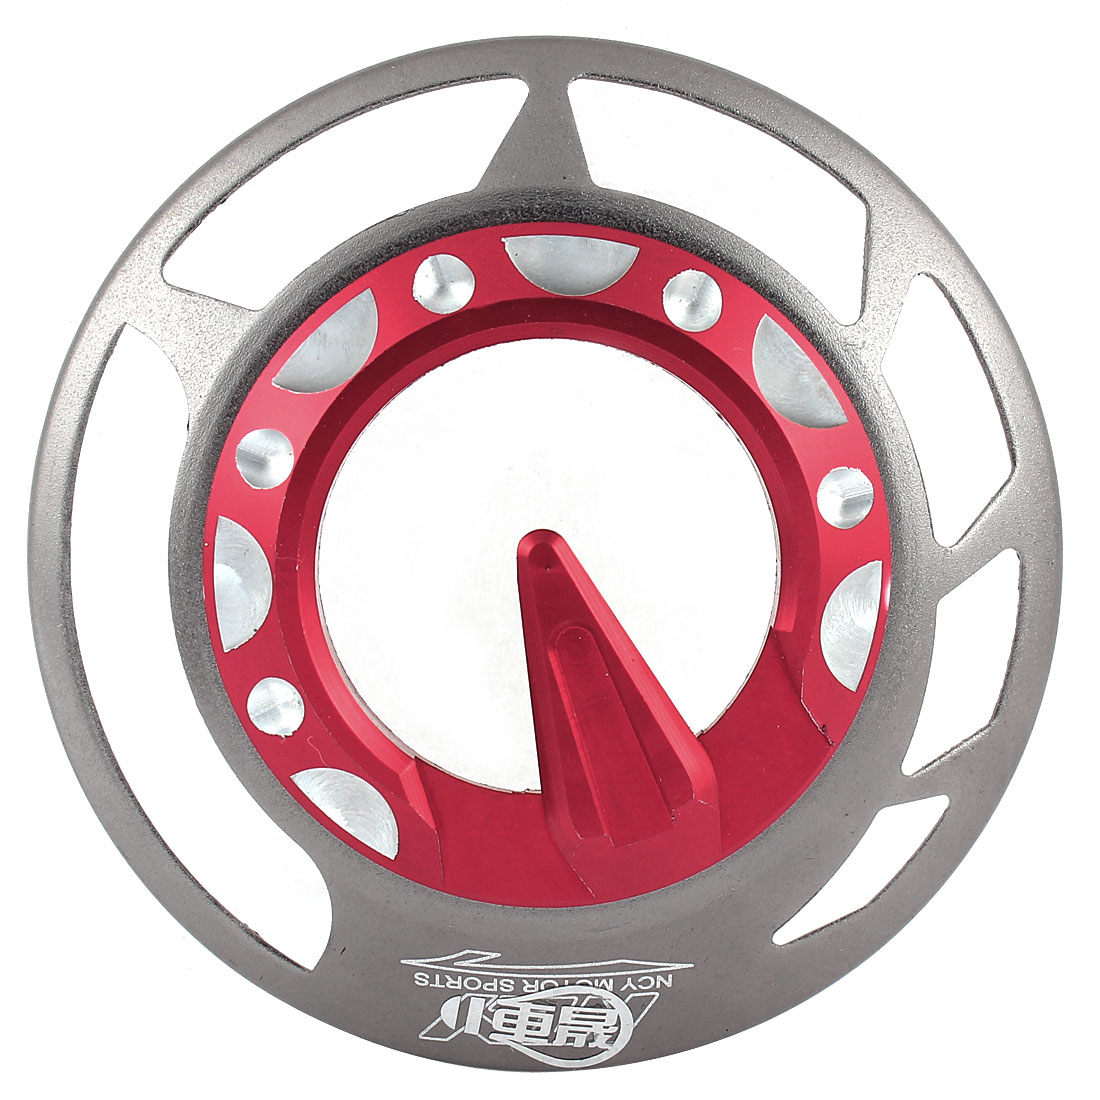 Autobike Motorcycle Red Silver Tone Circle Shaped Wheels Fan Cover